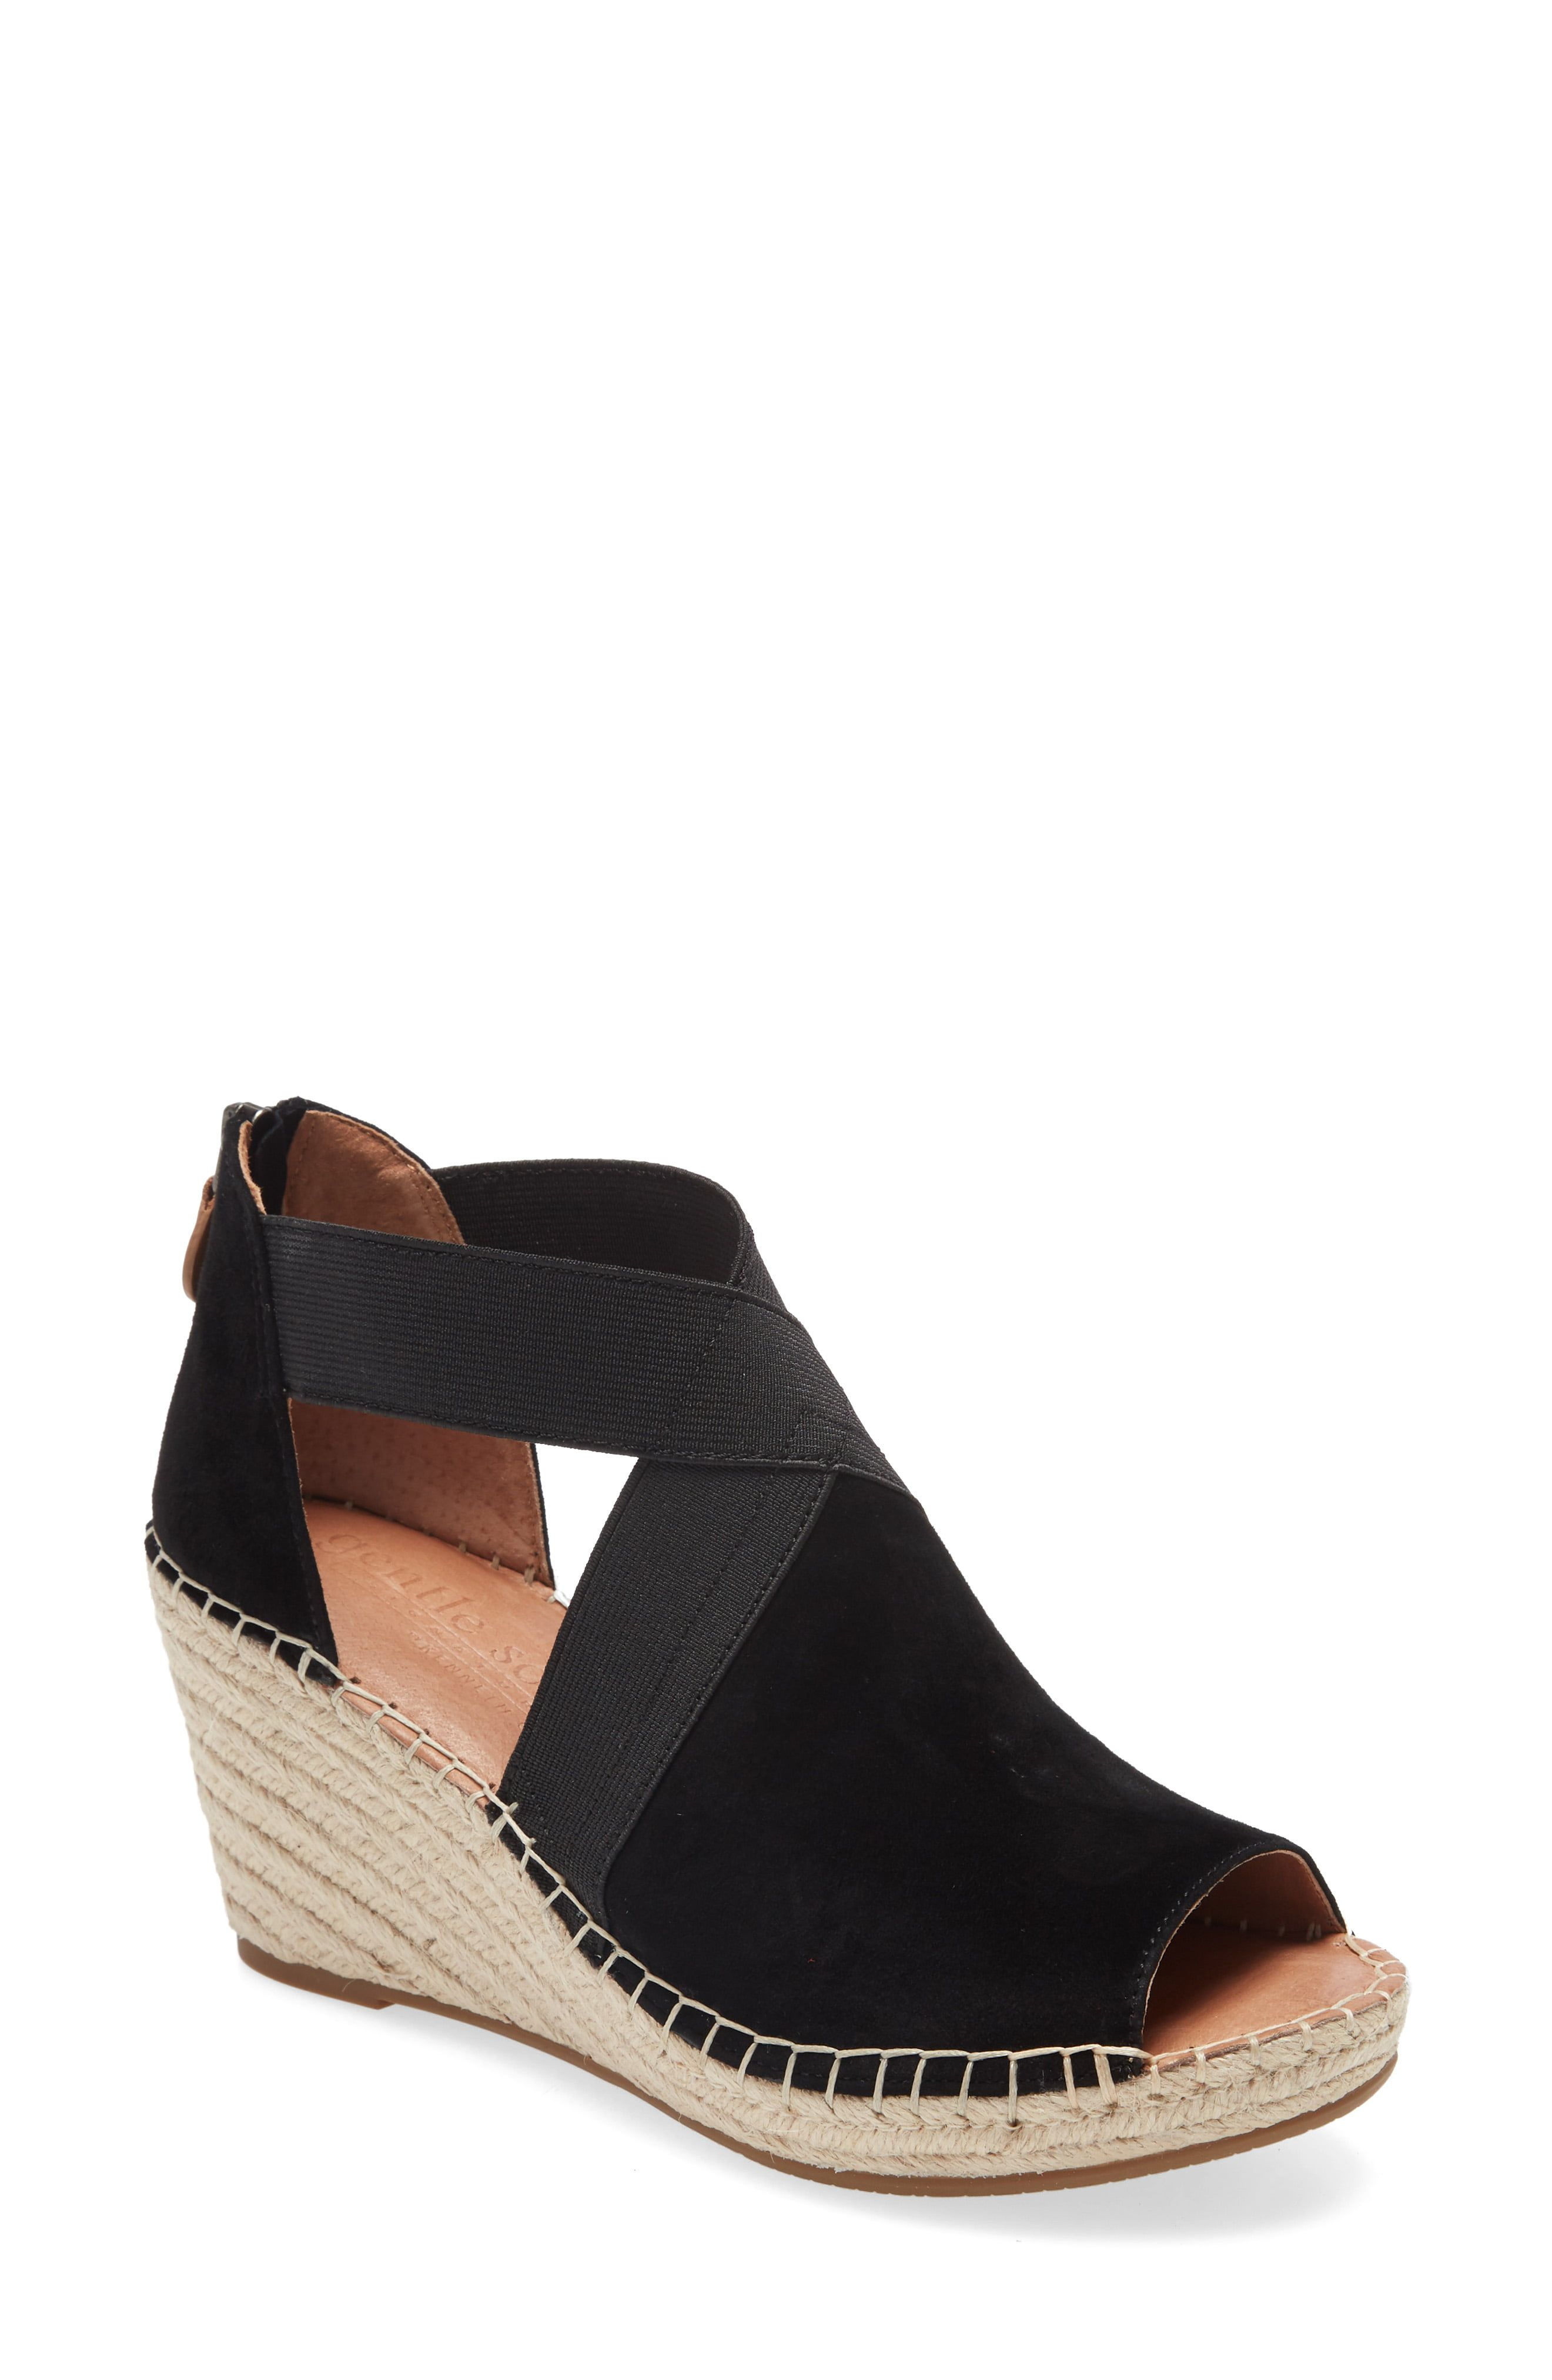 A Sandal For Any Occasion Featuring J Jill S Gentle Souls Forella Platform Sandals Platform Sandals Trending Womens Shoes Shoes